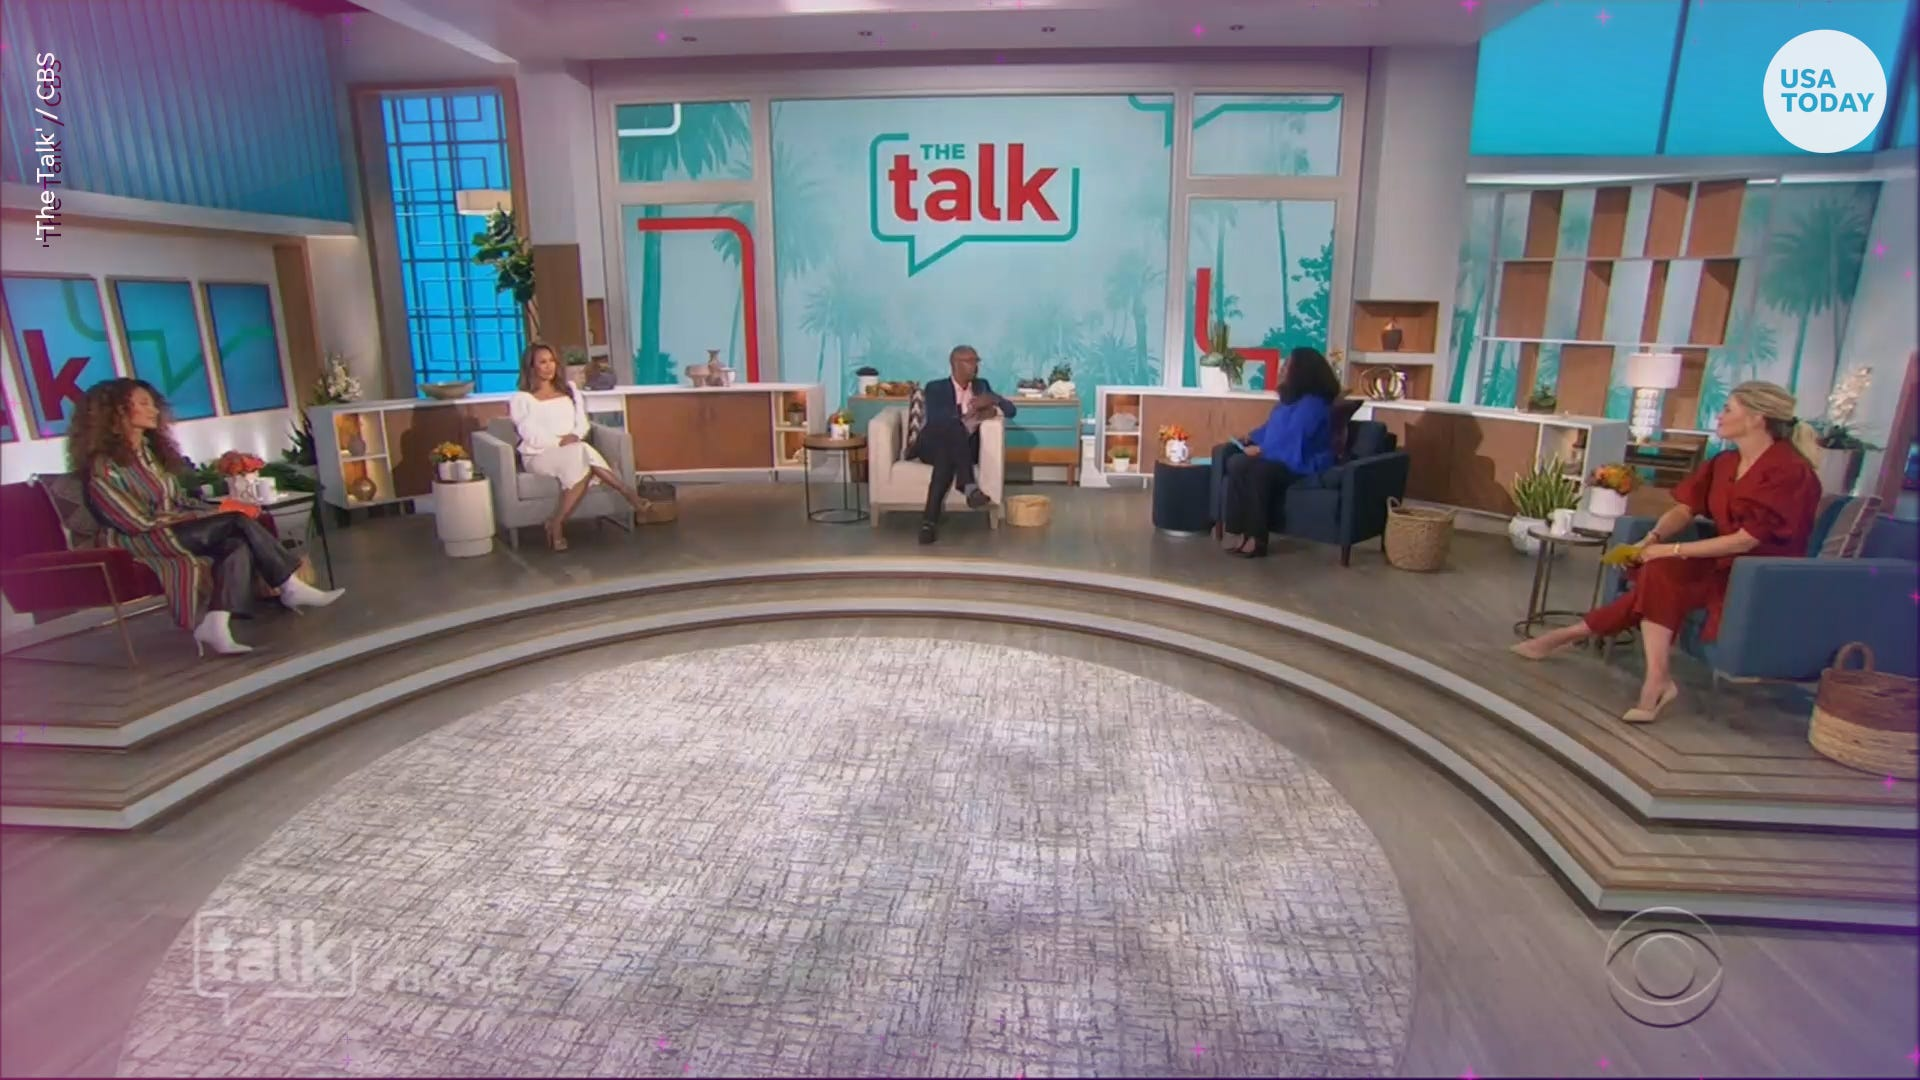 Here's how CBS' 'The Talk' addressed Sharon Osbourne's accusations on television